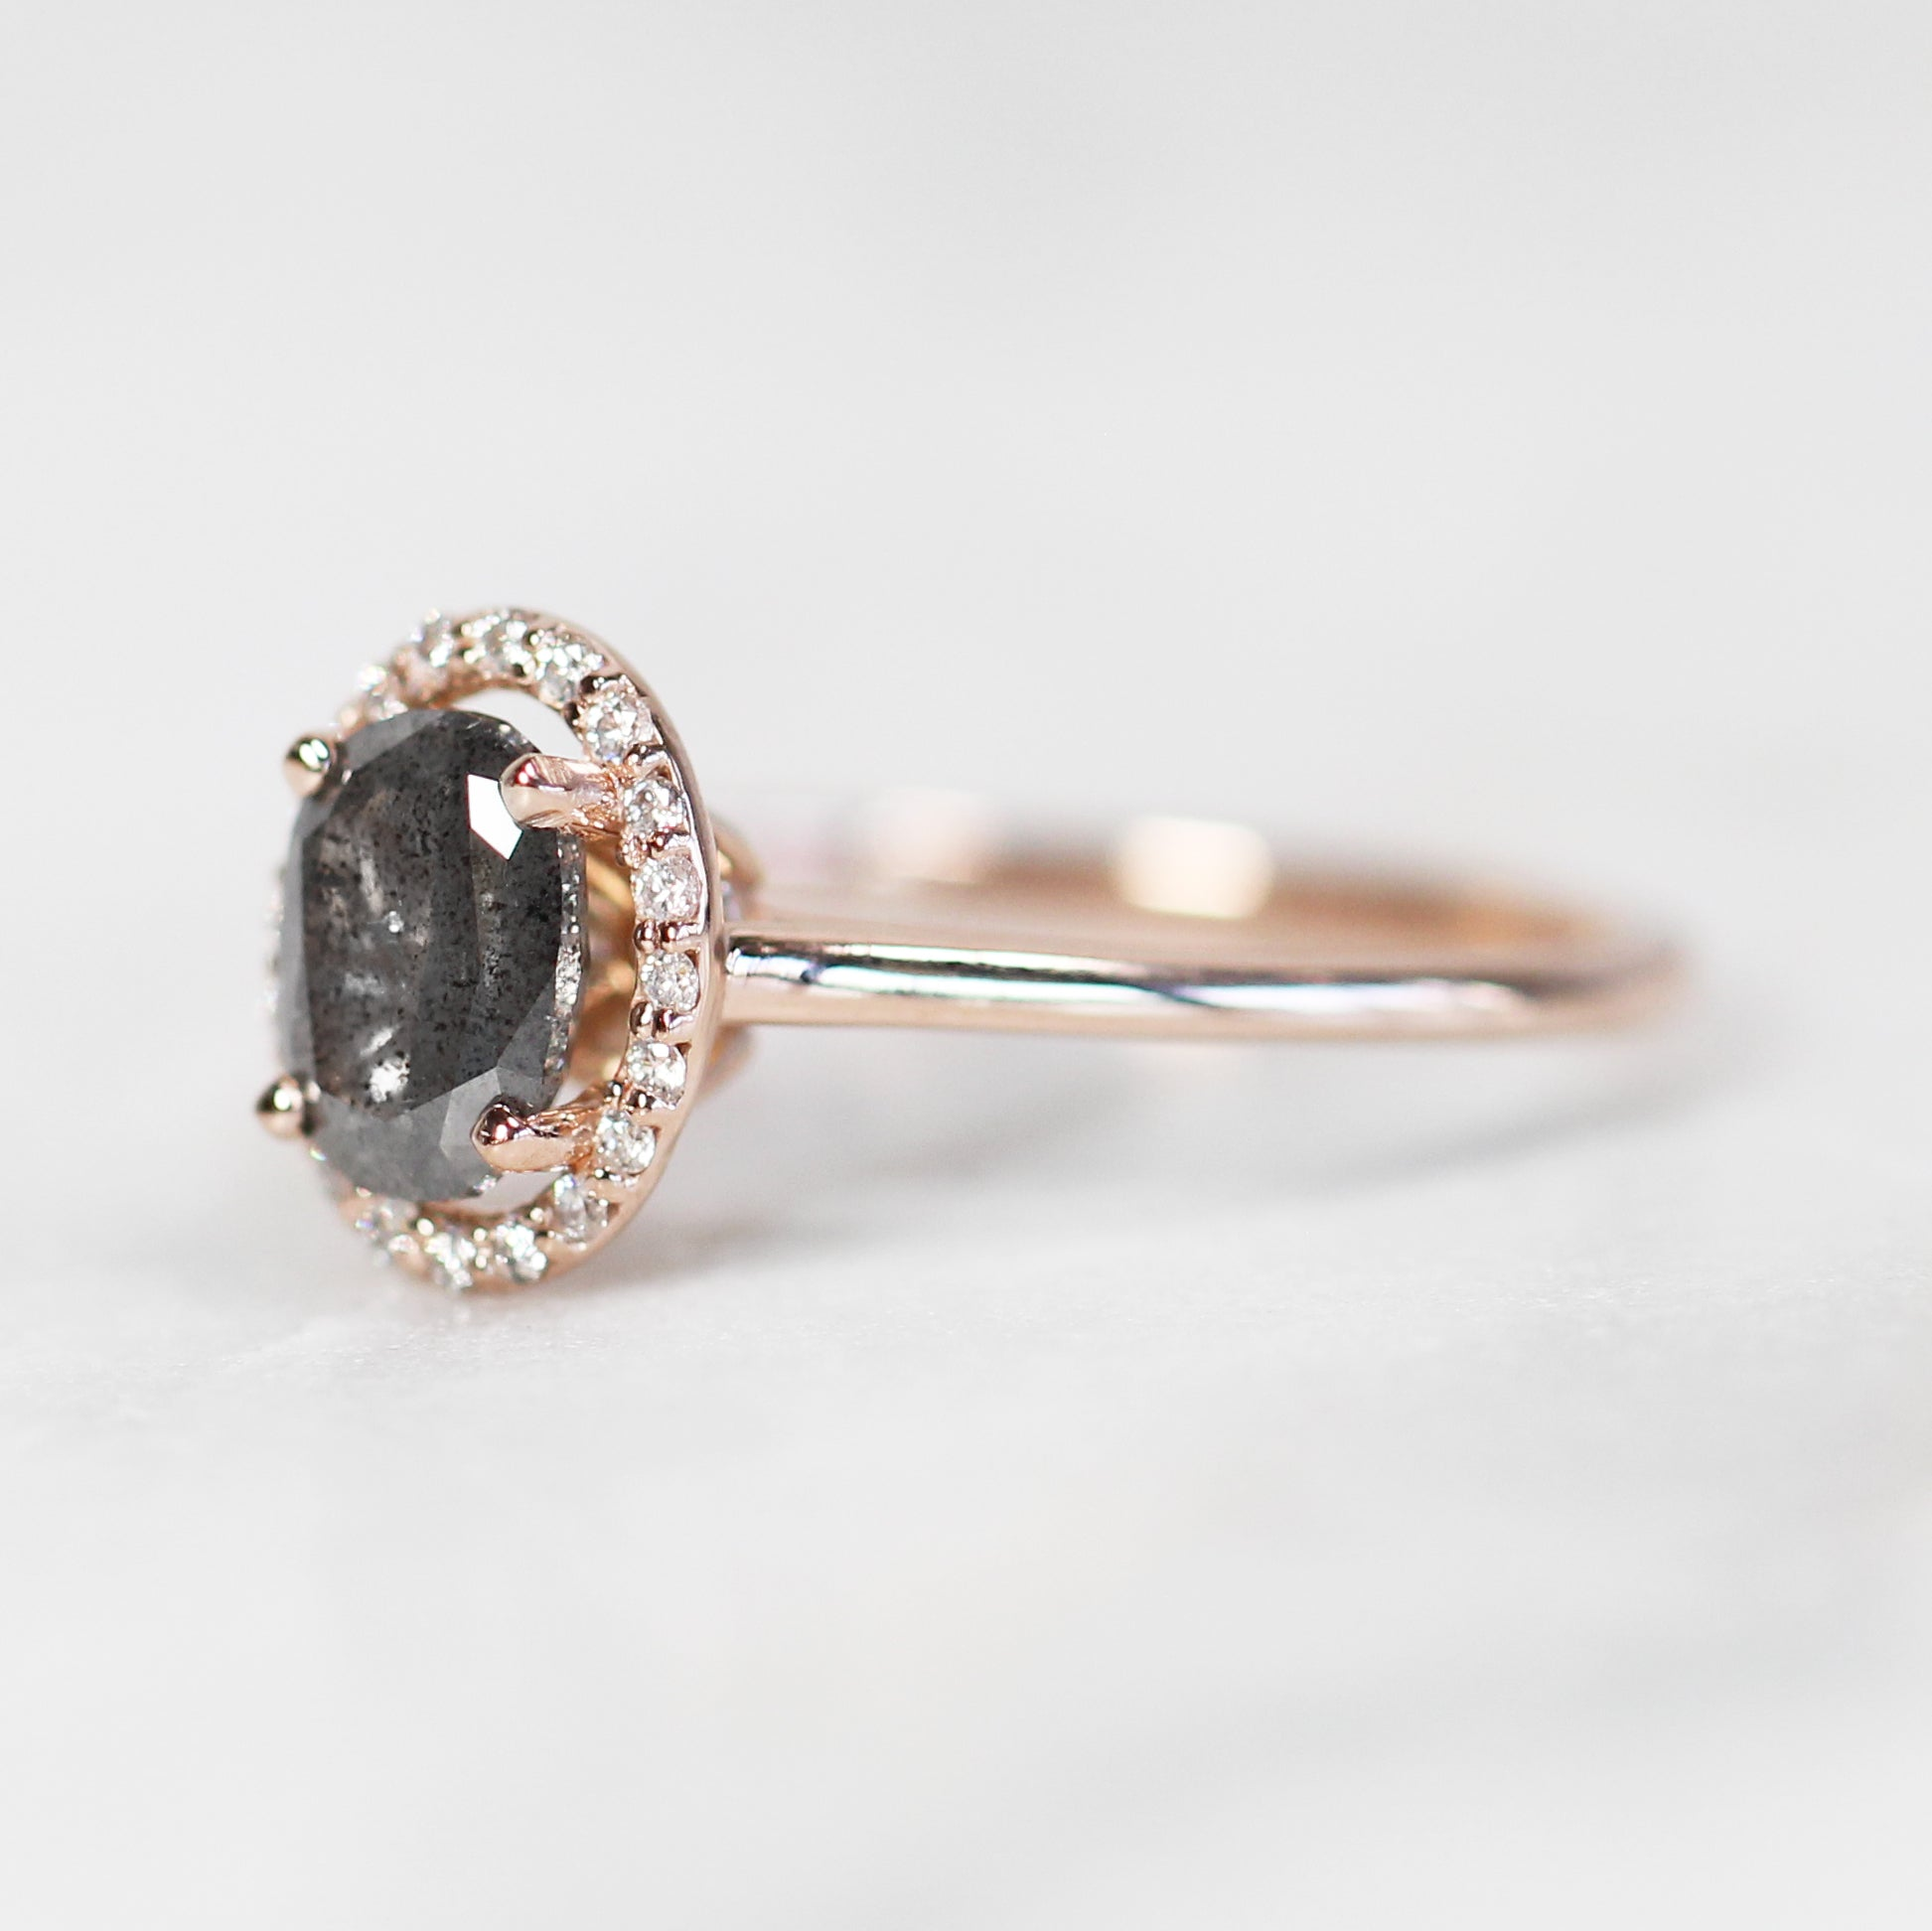 Cheryl Ring with 1.03 Carat Oval Celestial Diamond in 14k Rose Gold - Celestial Diamonds ® by Midwinter Co.